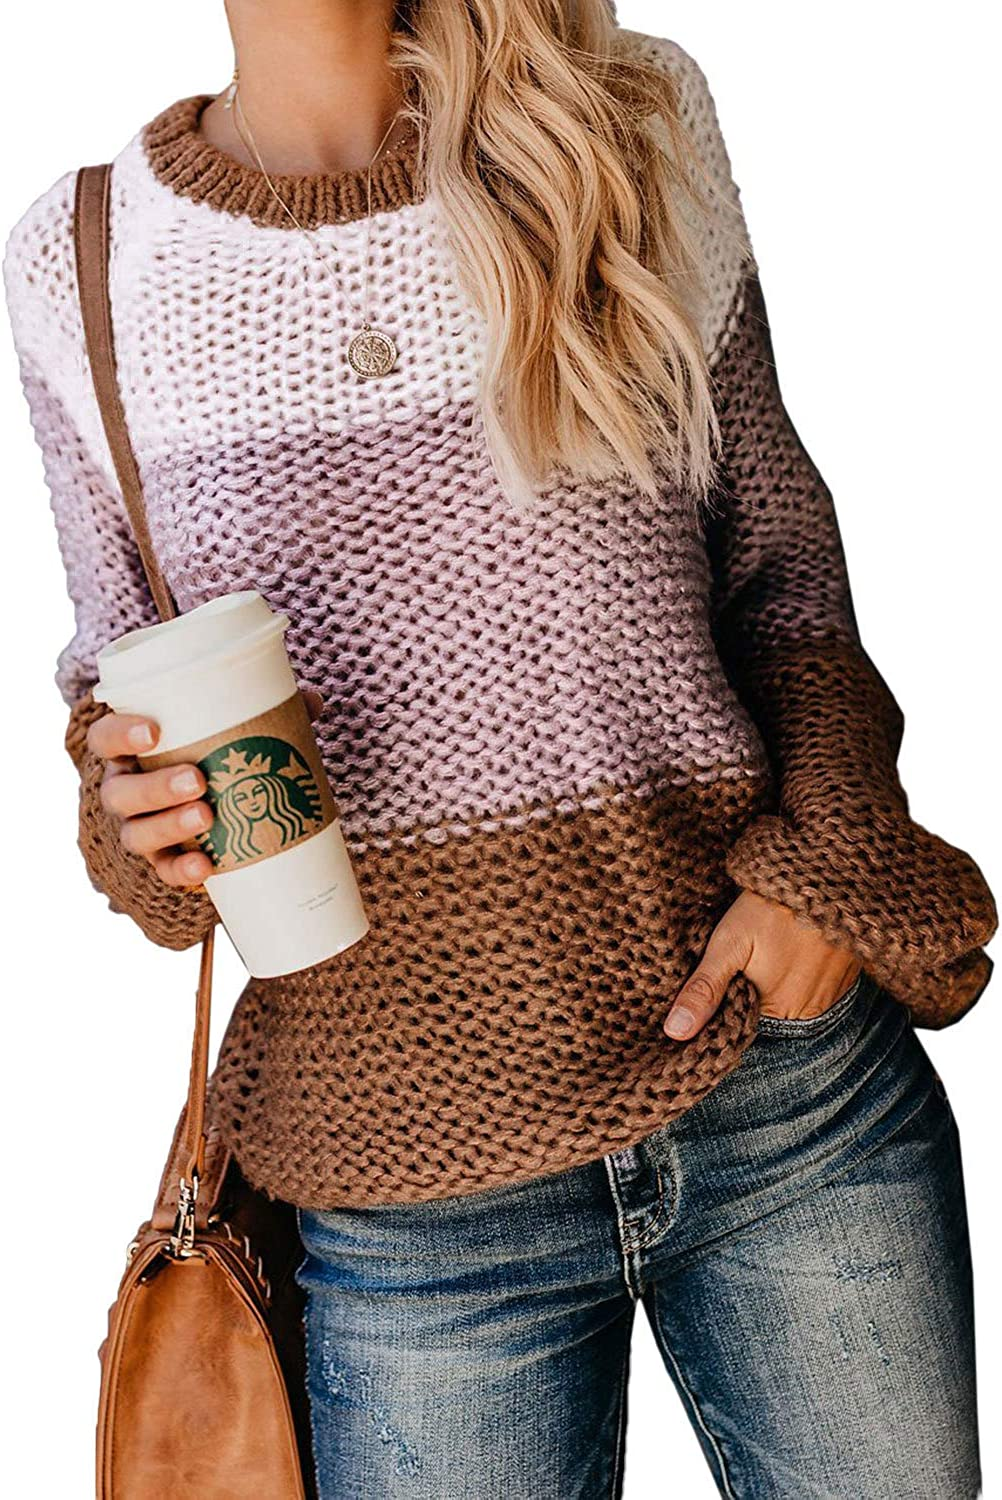 BLENCOT Women Colorblock Knit Sweater Casual Crewneck Thick Long Sleeve Tops Pullover